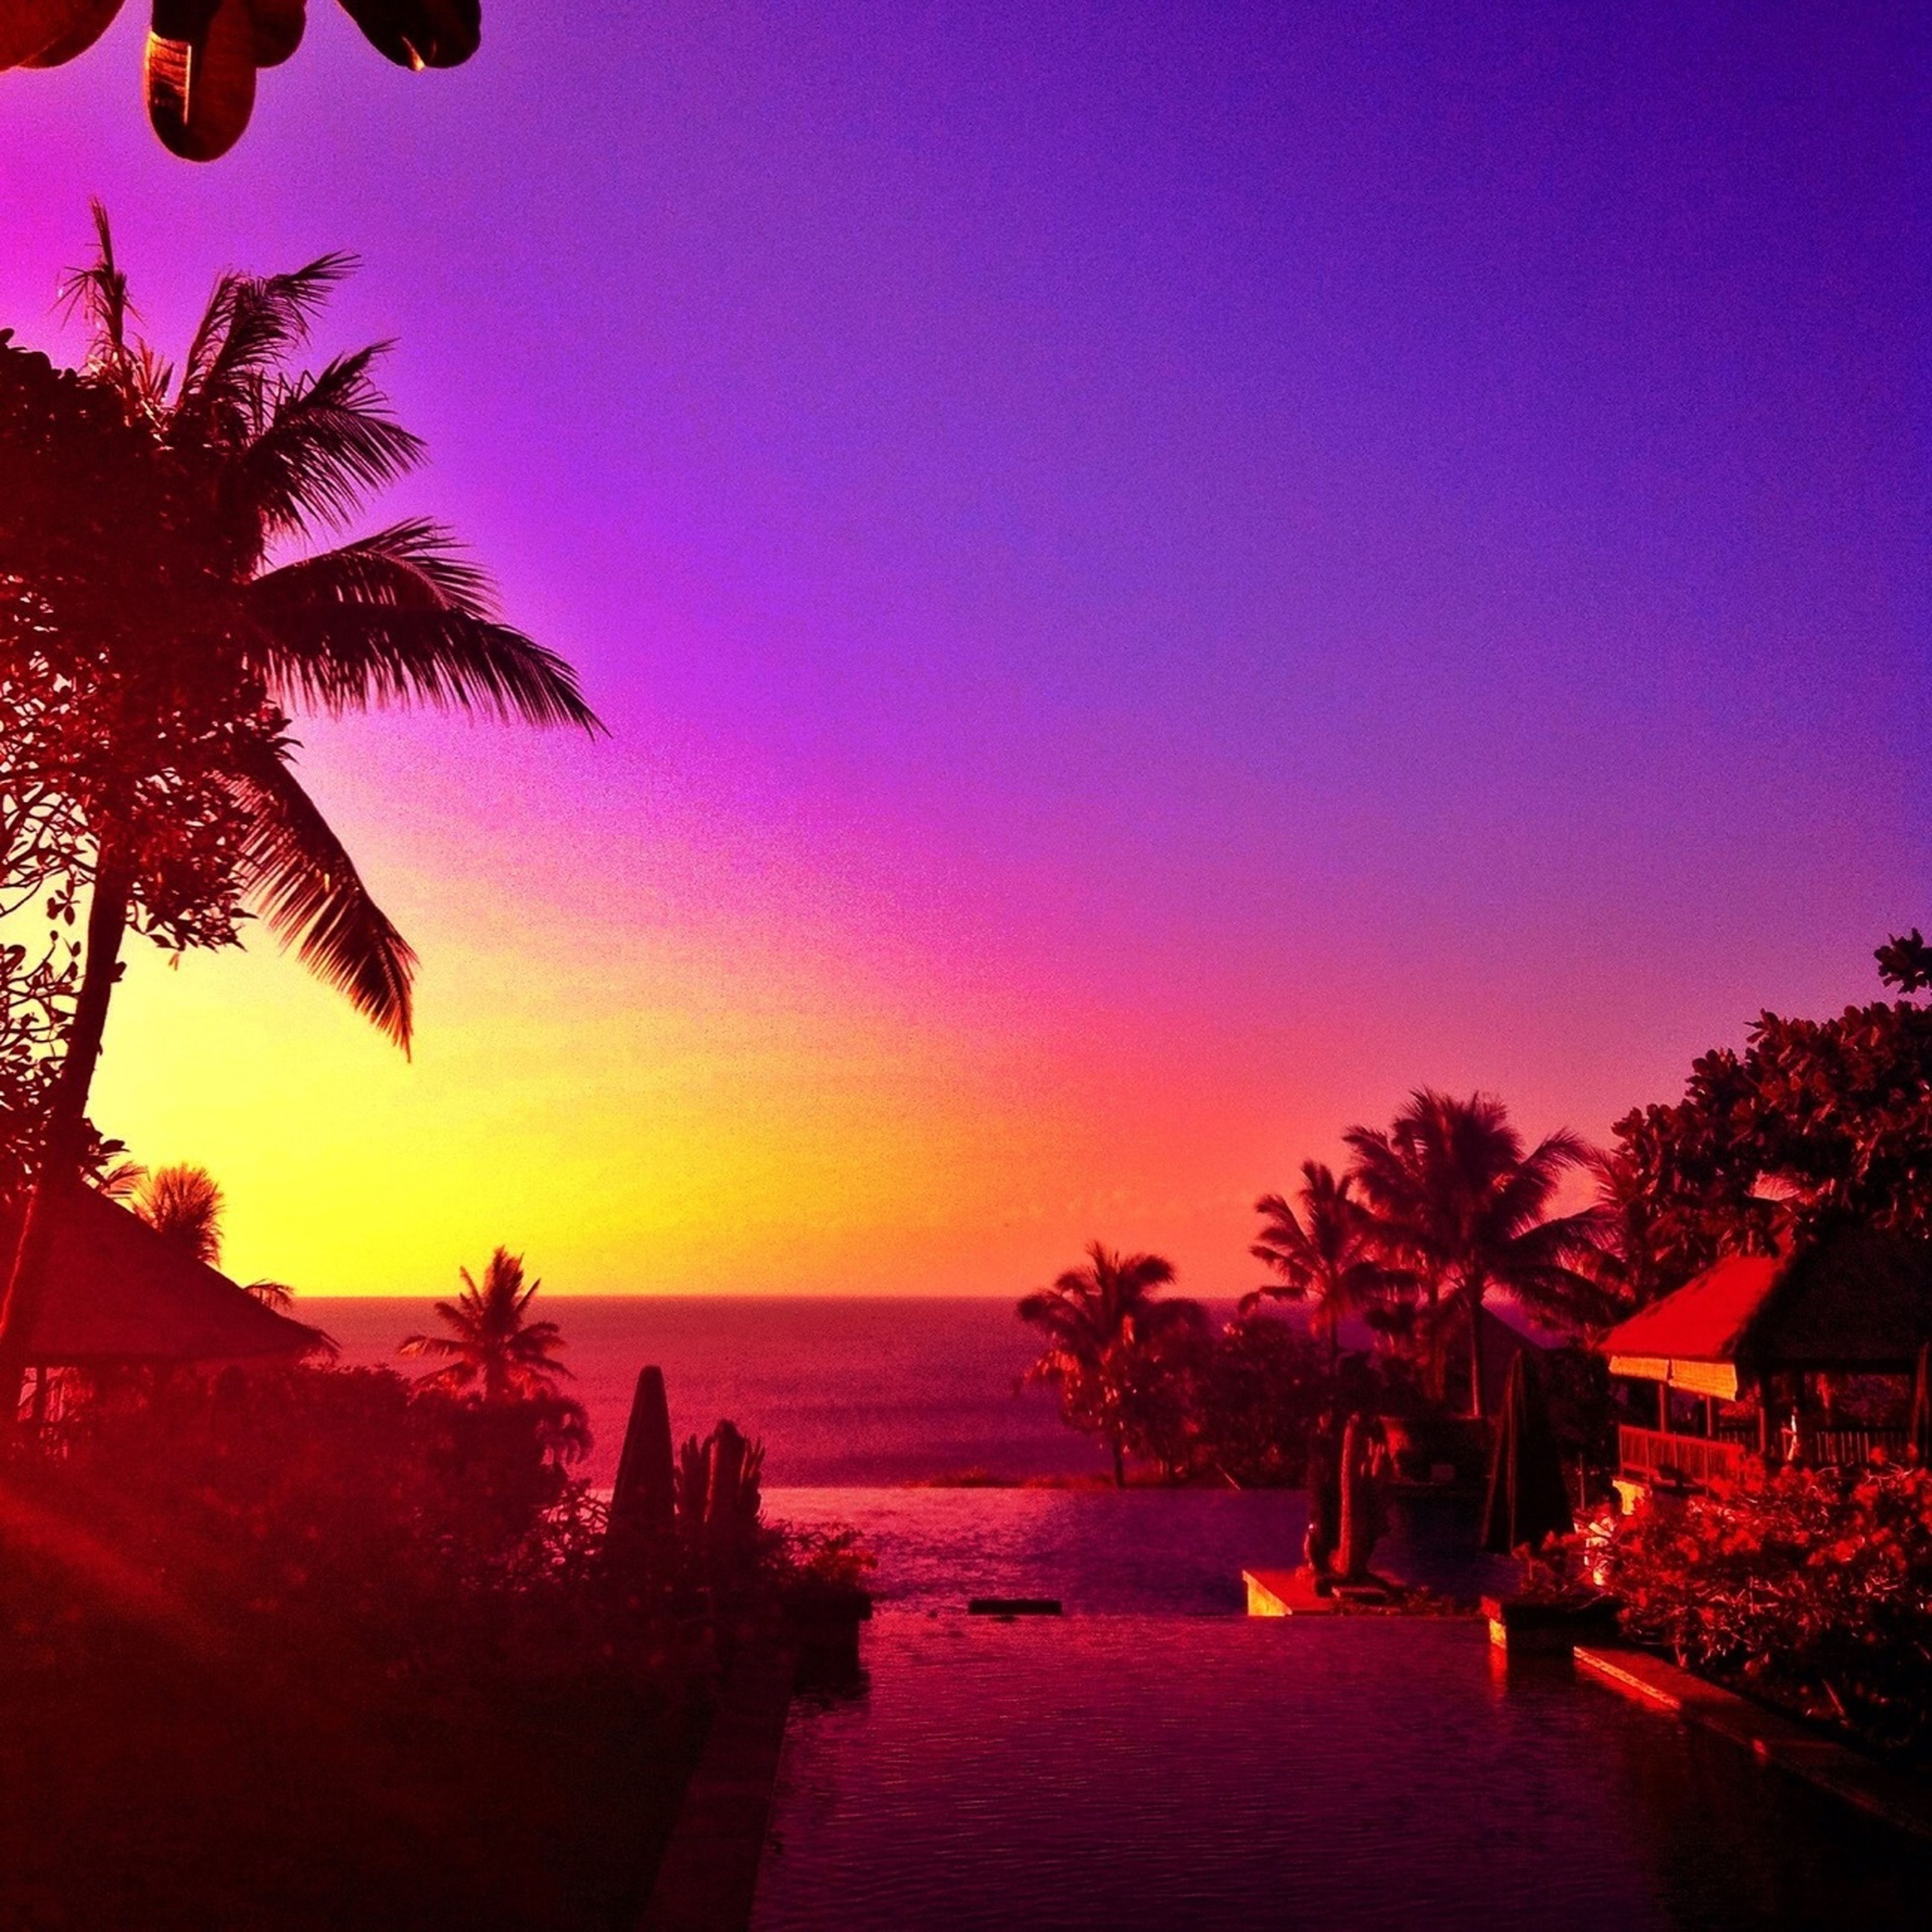 sunset, palm tree, horizon over water, sea, beauty in nature, tree, scenics, tranquil scene, tranquility, nature, copy space, silhouette, orange color, idyllic, sky, water, clear sky, beach, growth, built structure